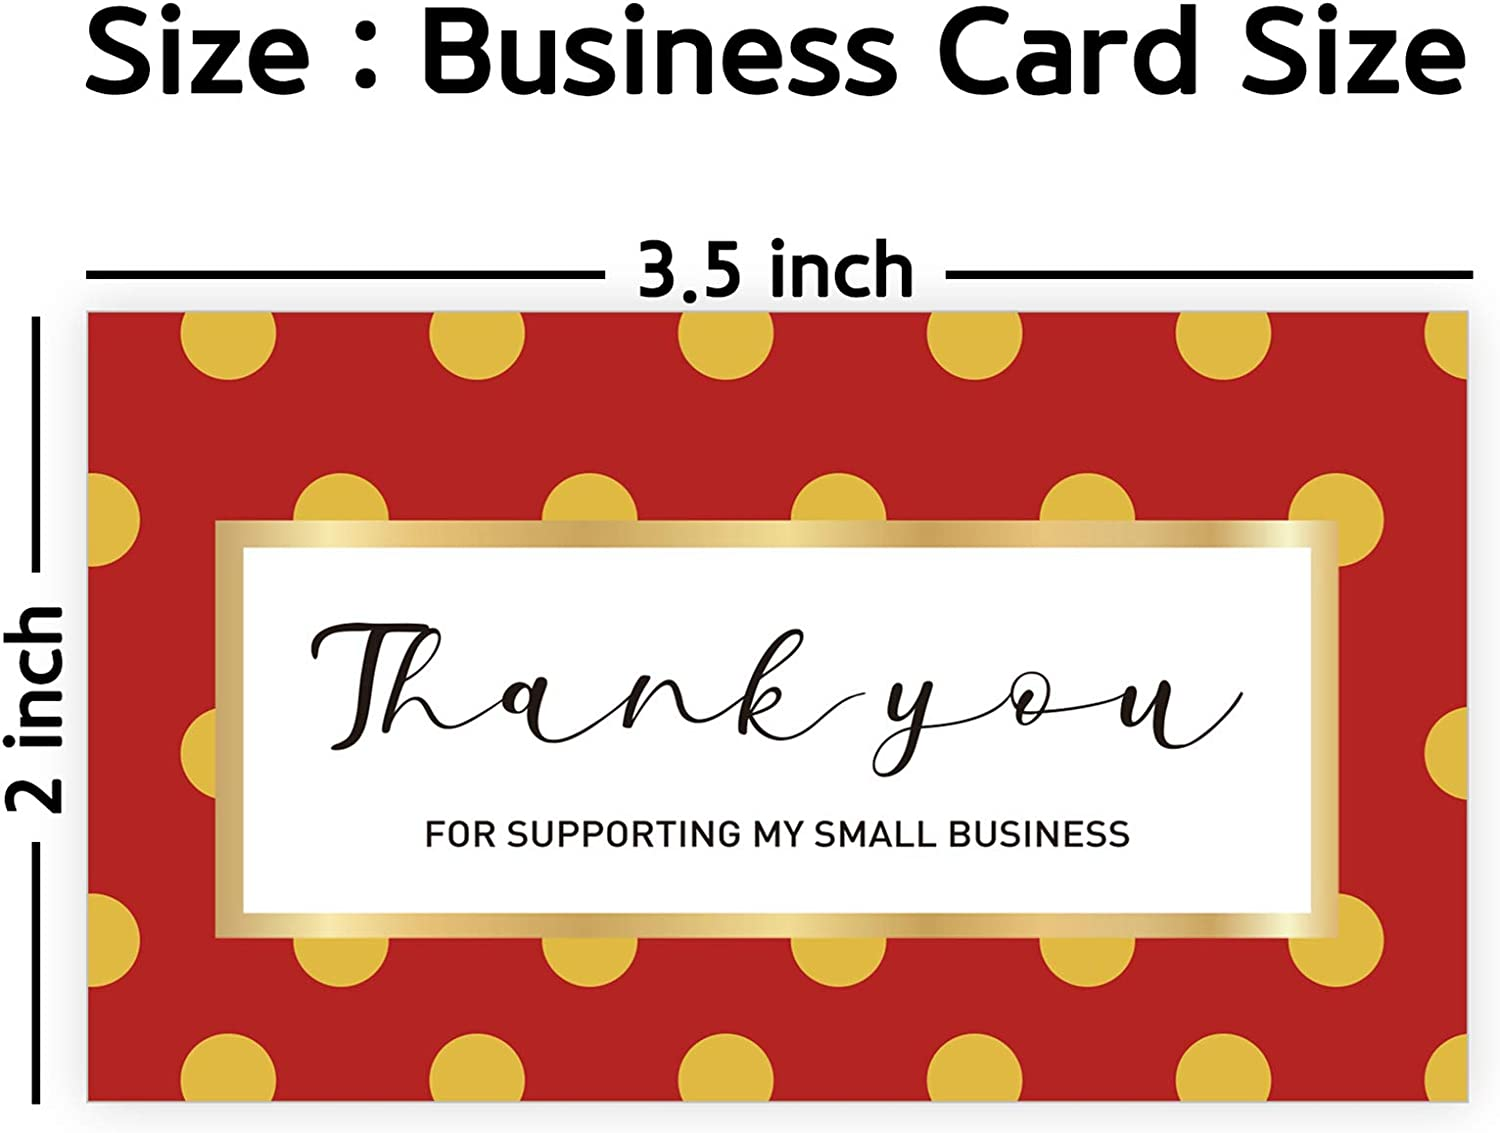 Amazon Com Modern 5th Thank You For Supporting My Small Business Cards Red Polka Dot Design 3 5 X 2 Inches 100 Business Card Sized For Online Retail Store Handmade Goods